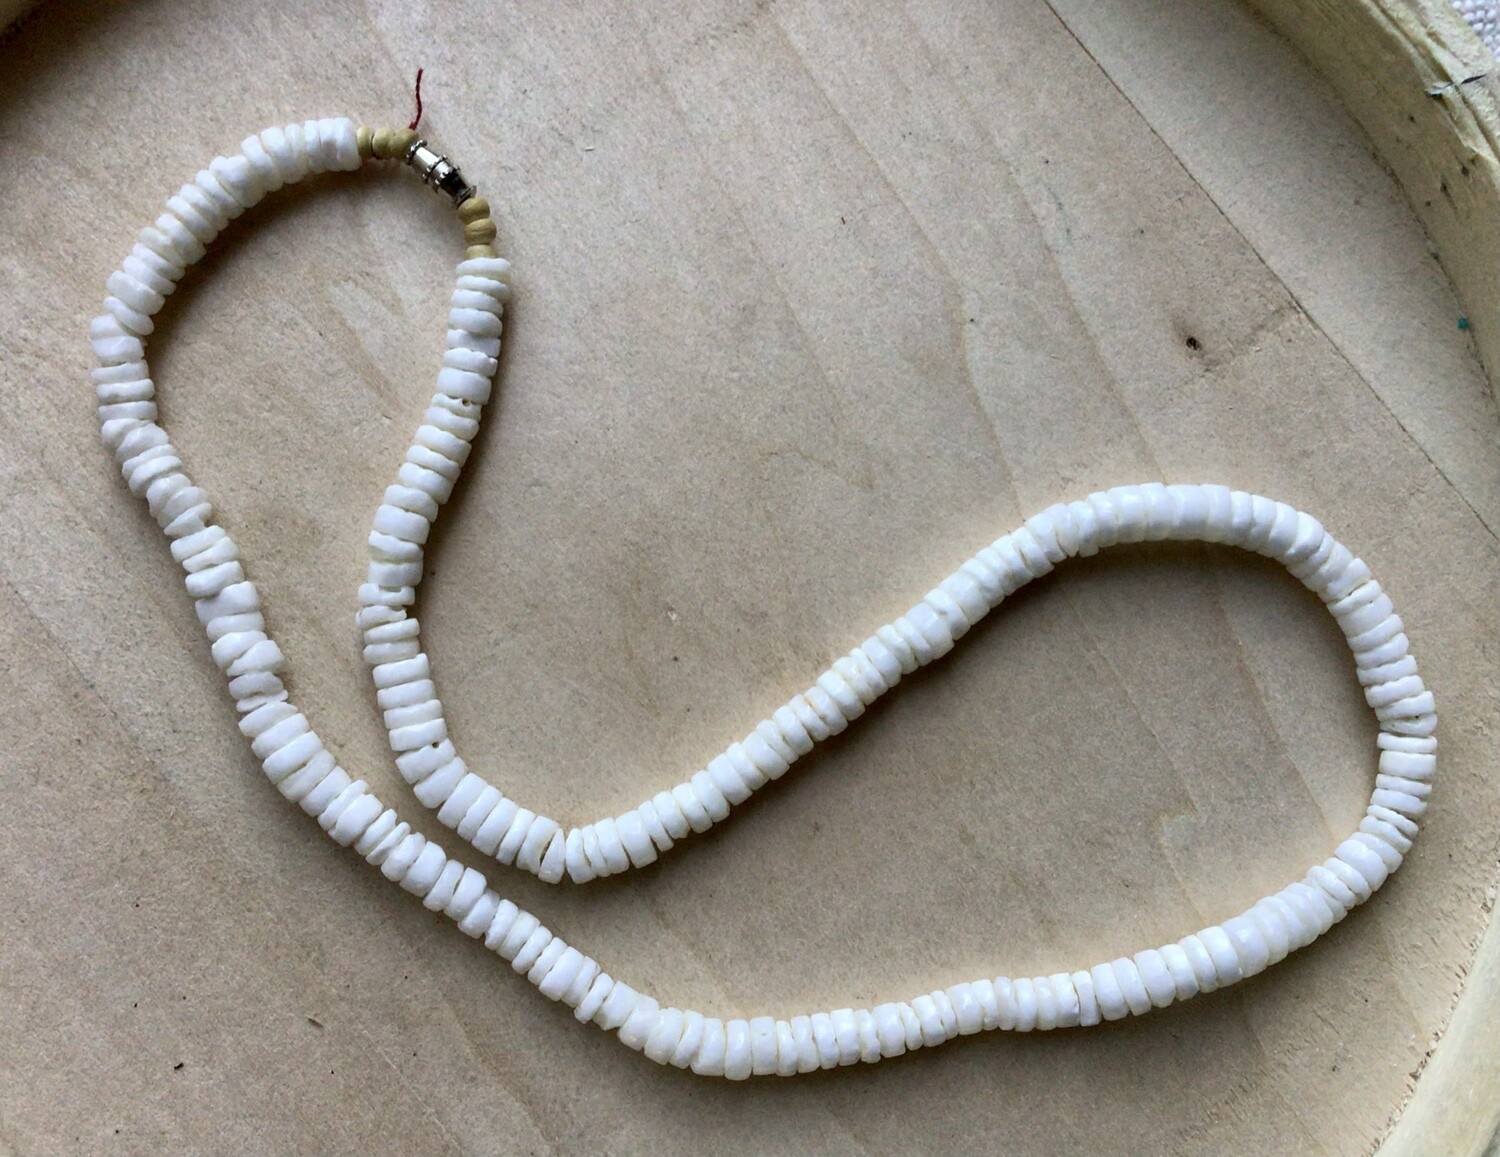 Necklace: White Puka Shells